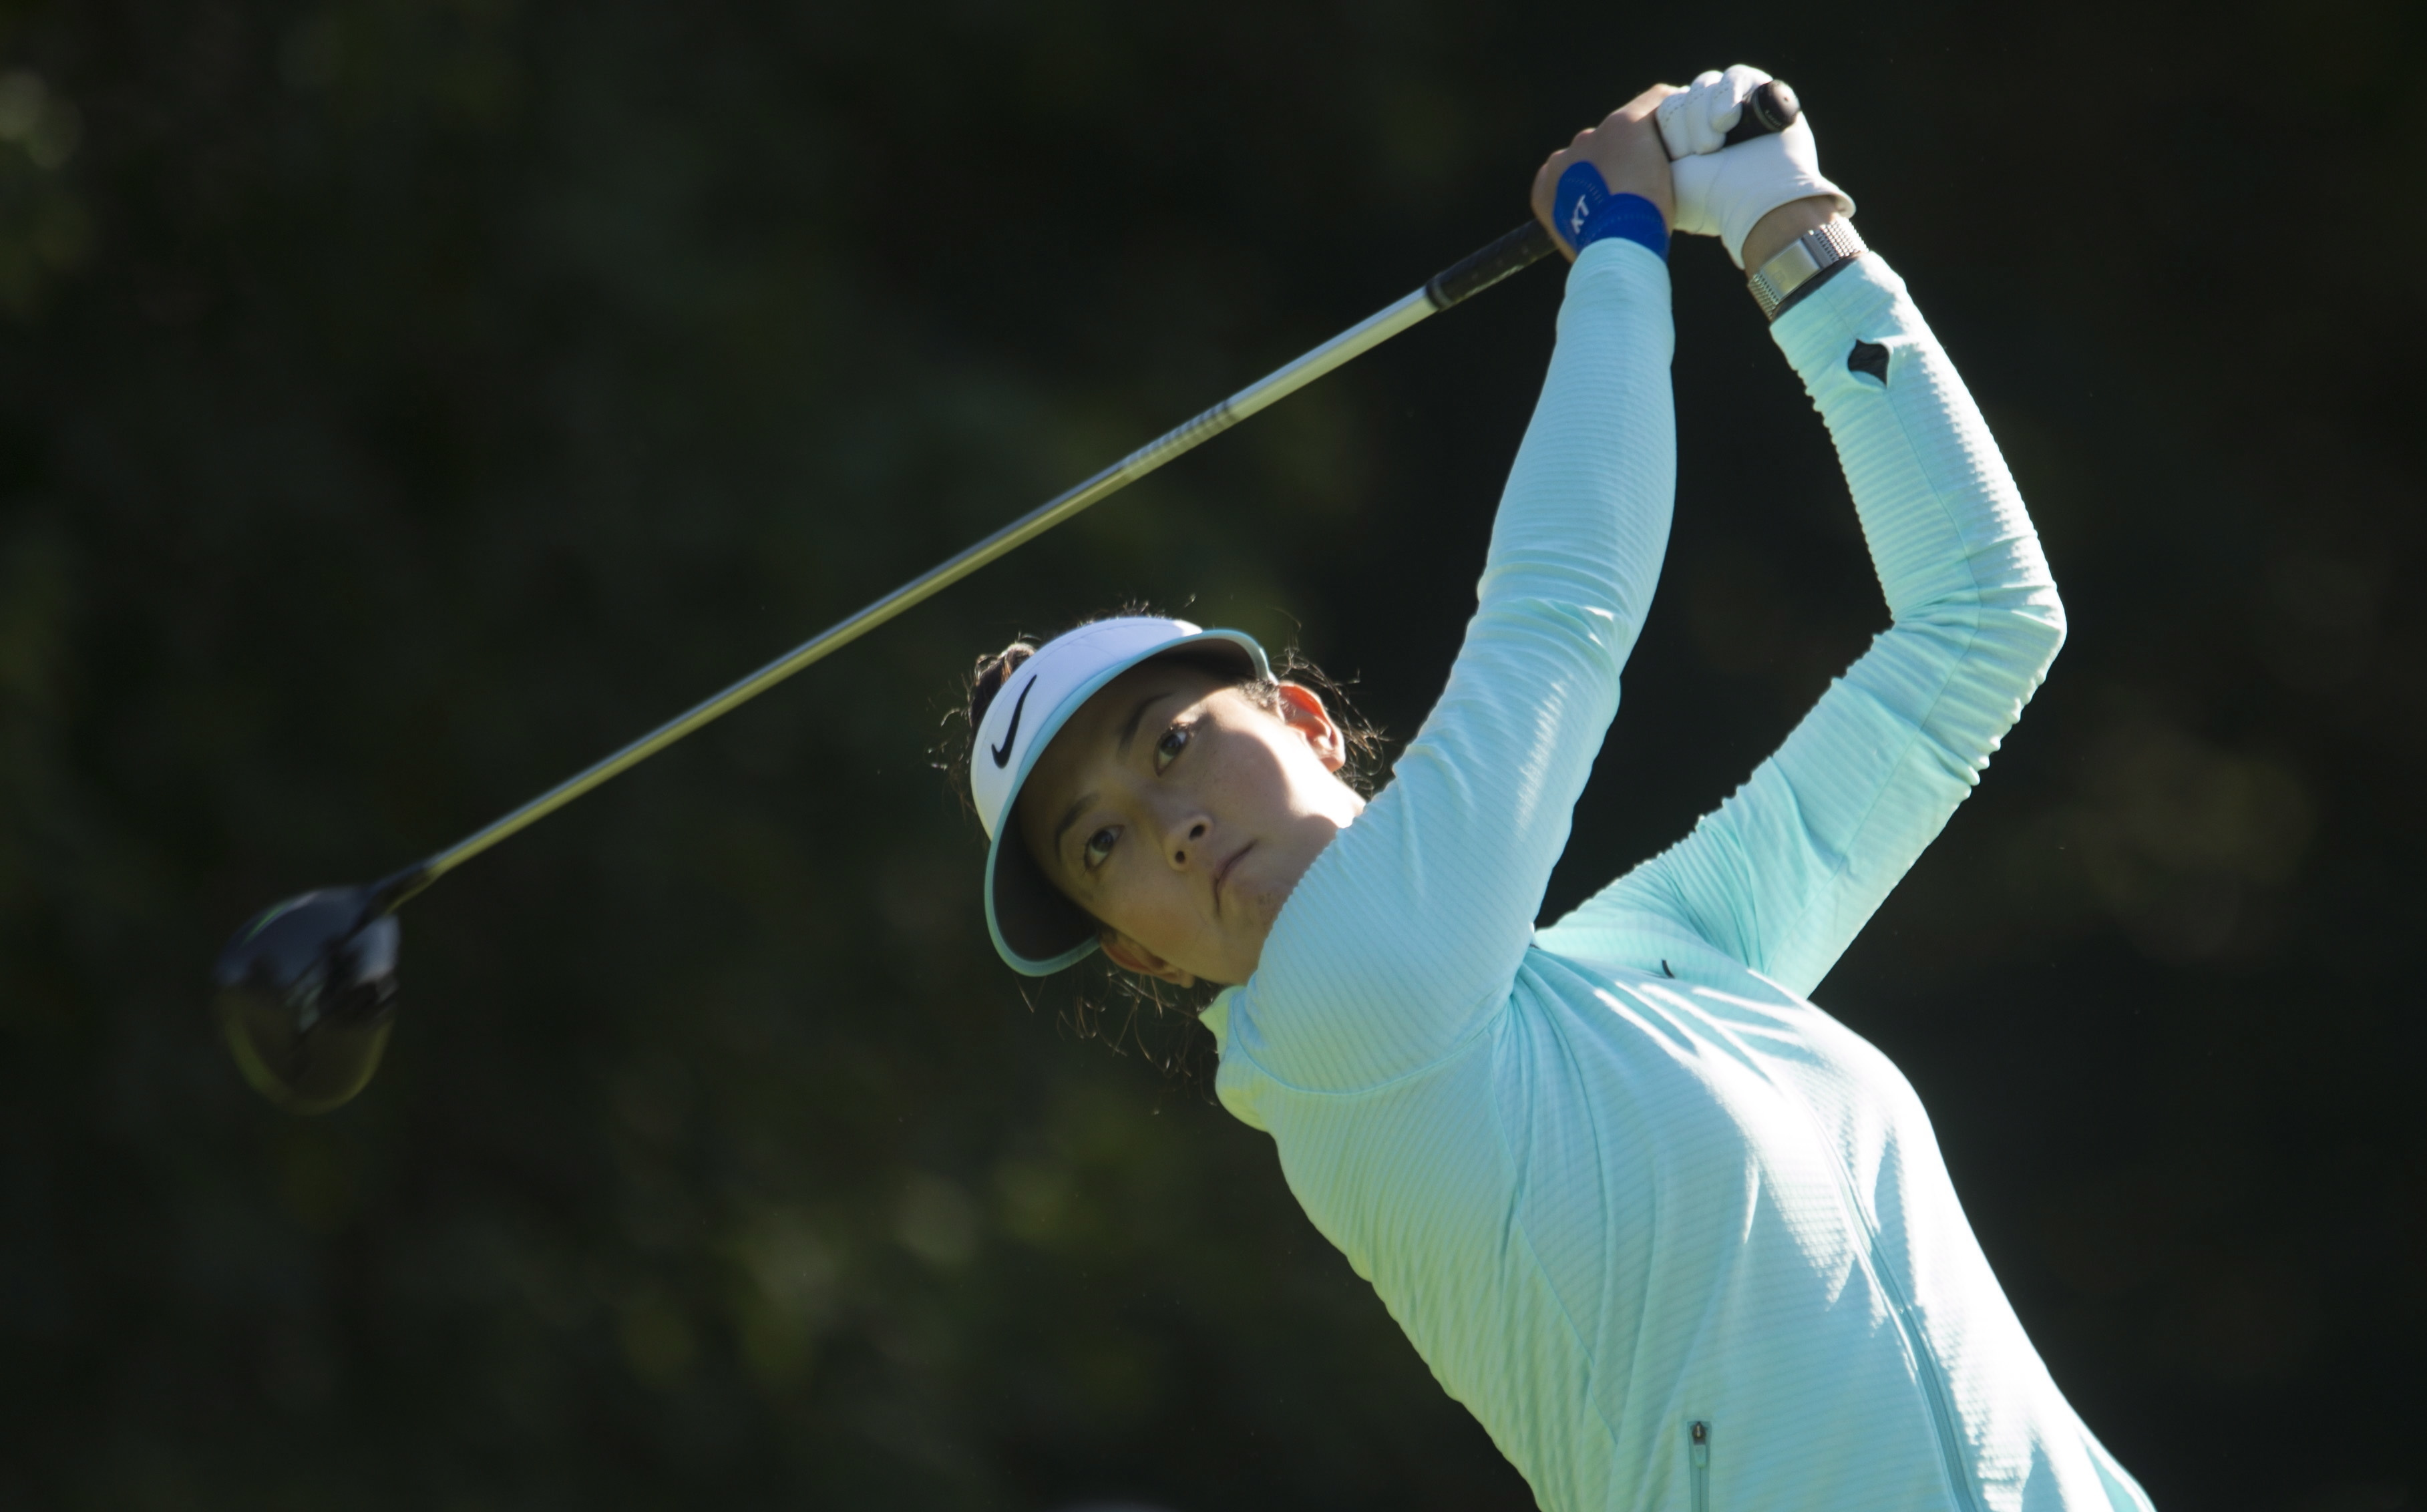 Michelle Wie hits a drive off the fourth tee during first round play at the Canadian Open in Ottawa, Thursday August 24, 2017. (Adrian Wyld/The Canadian Press via AP)